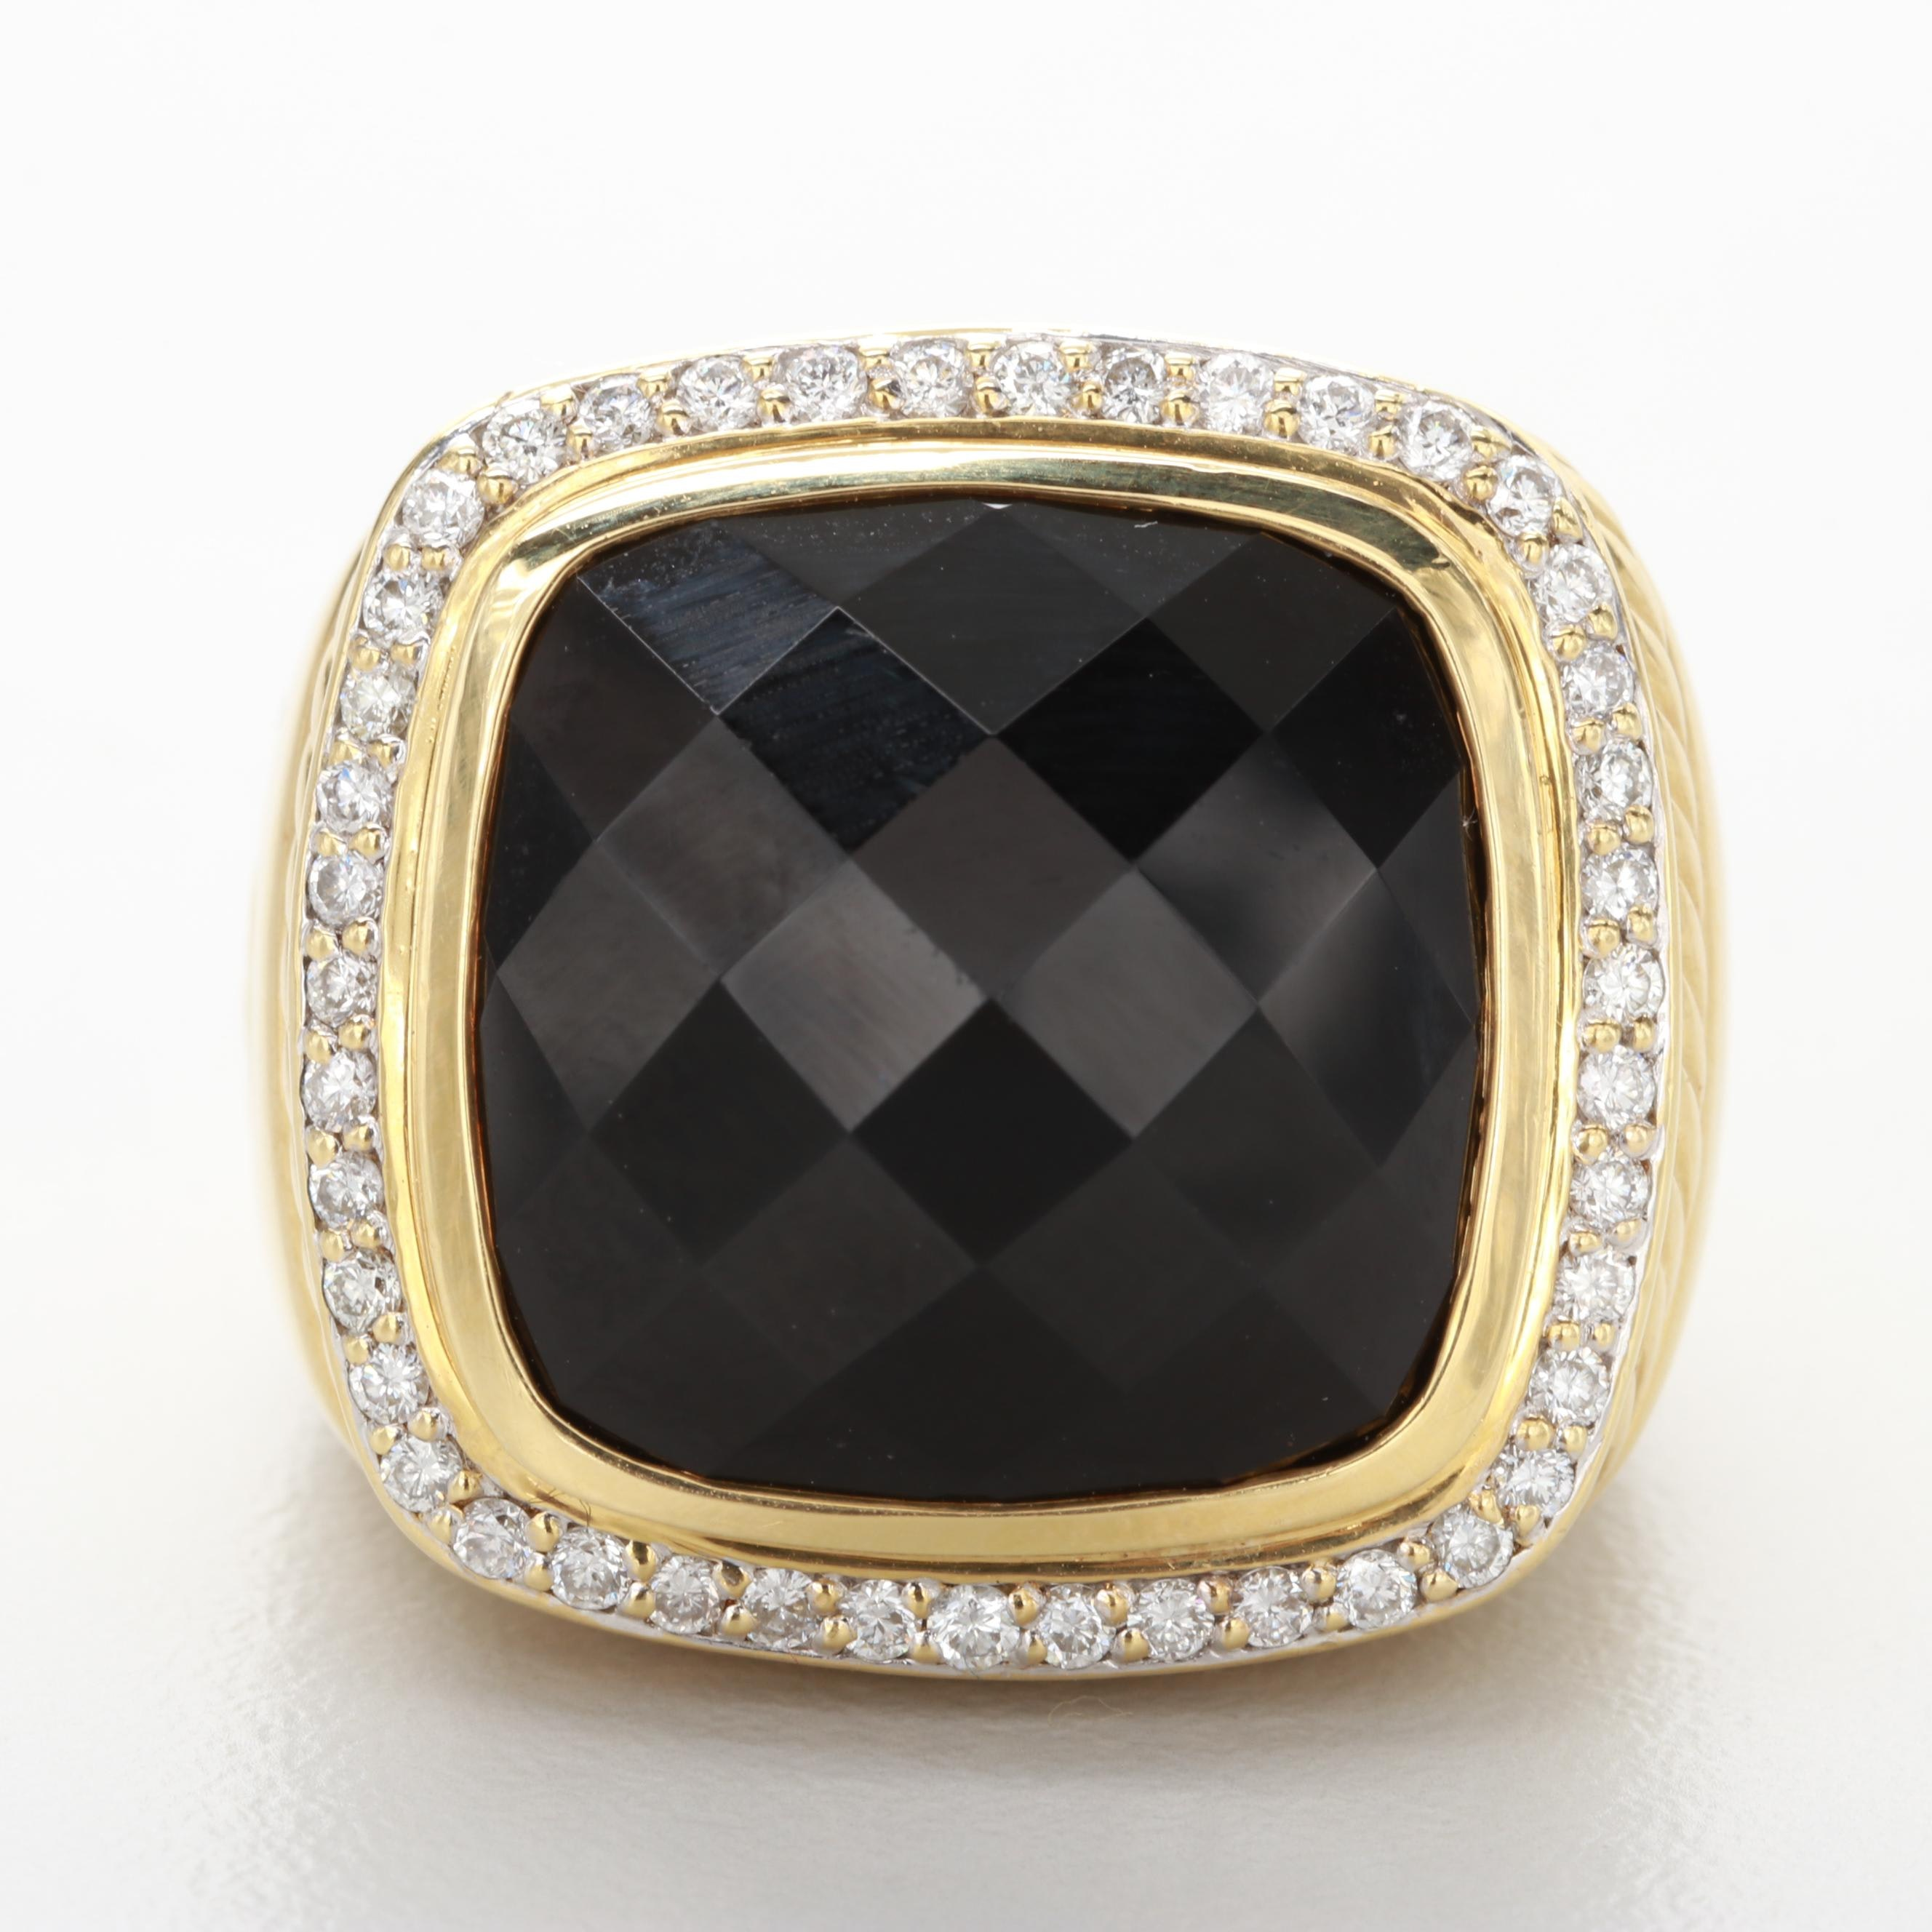 David Yurman 18K Yellow Gold Black Onyx and Diamond Ring